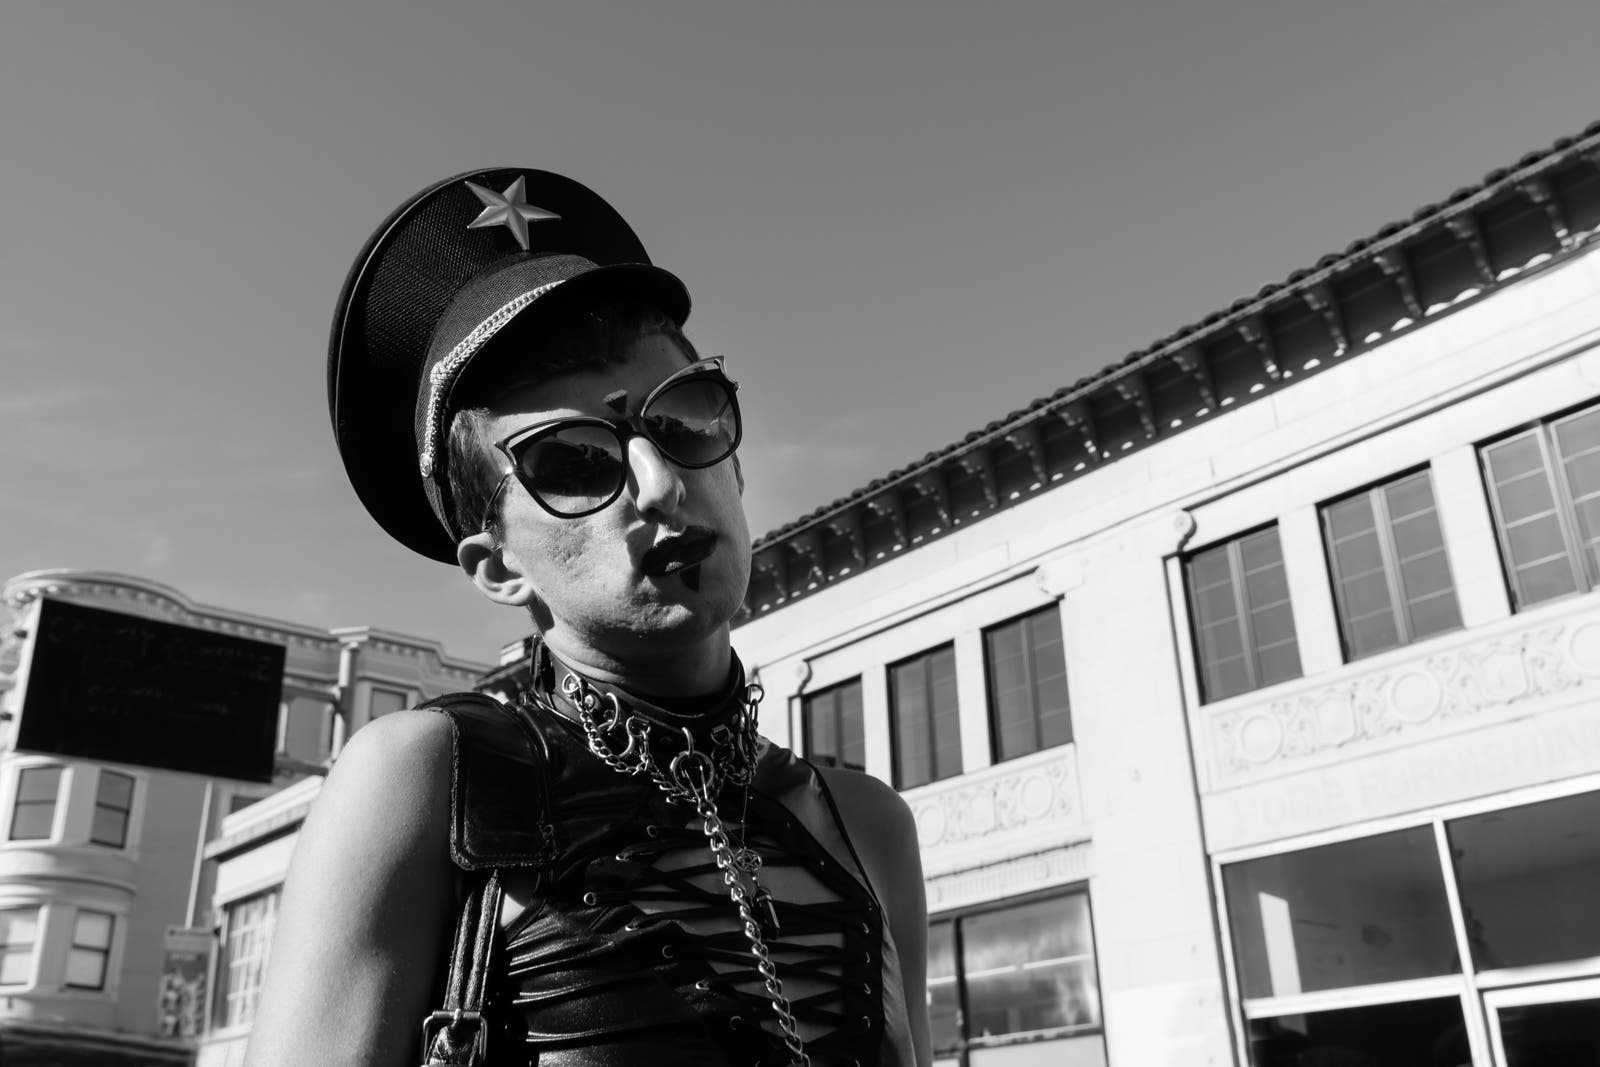 Eric Davidove's Street Portraits Show the Faces of San Francisco's BDSM Culture (NSFW)